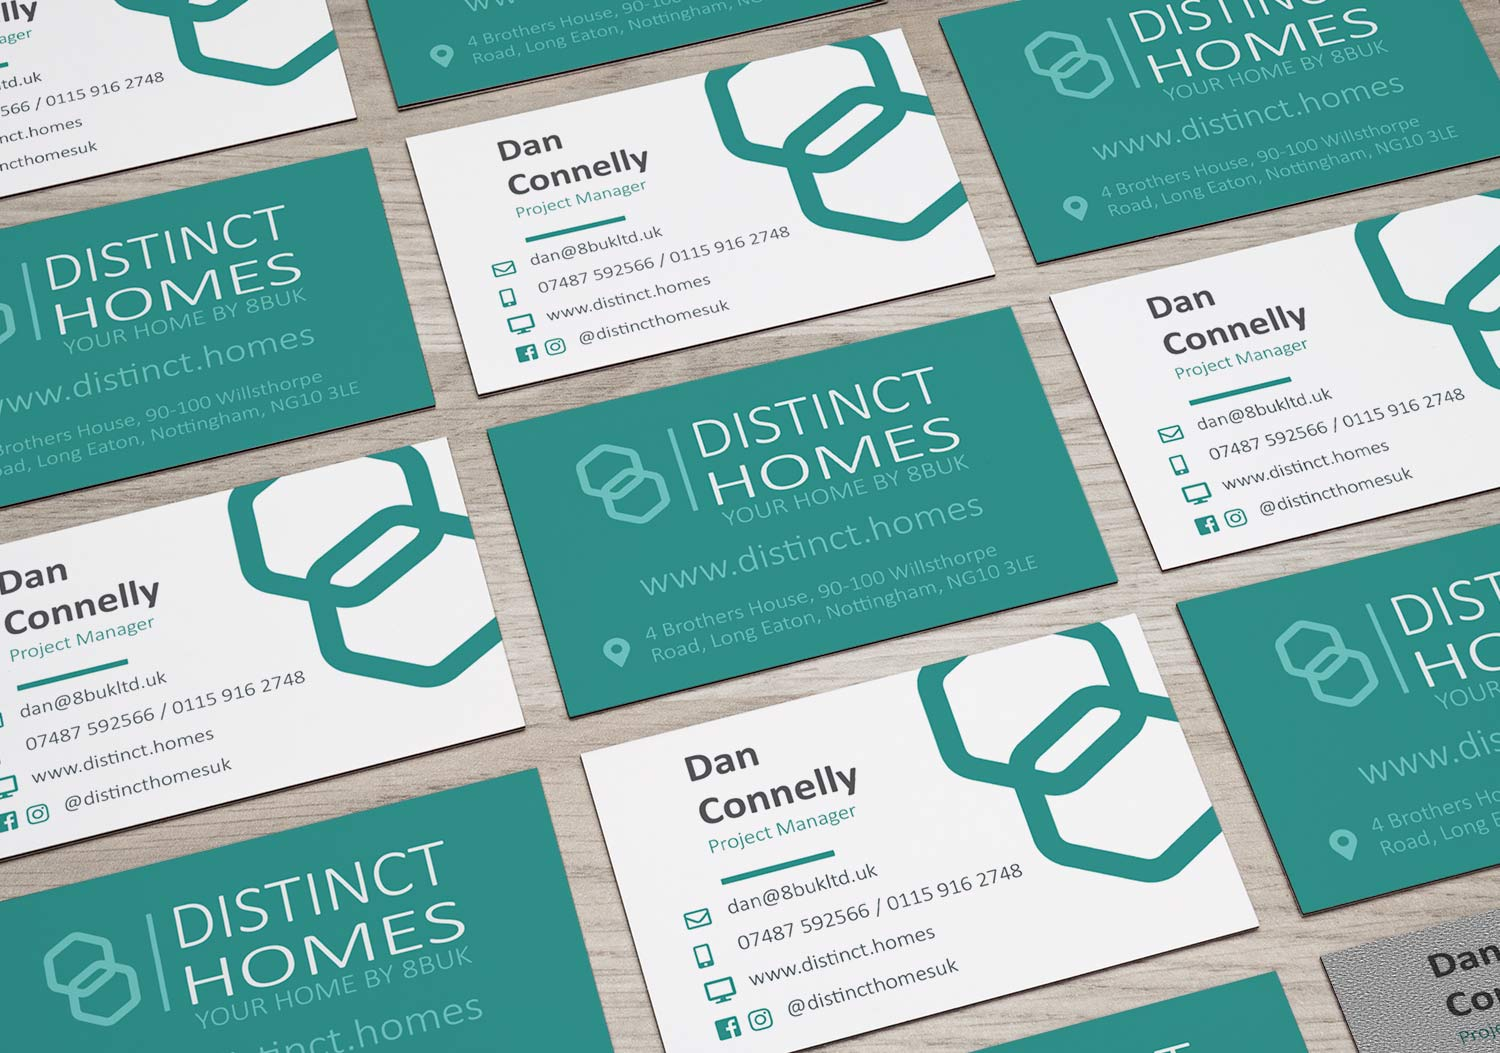 distinct homes business cards laid out on a table showing front and back as part of a branding exercise